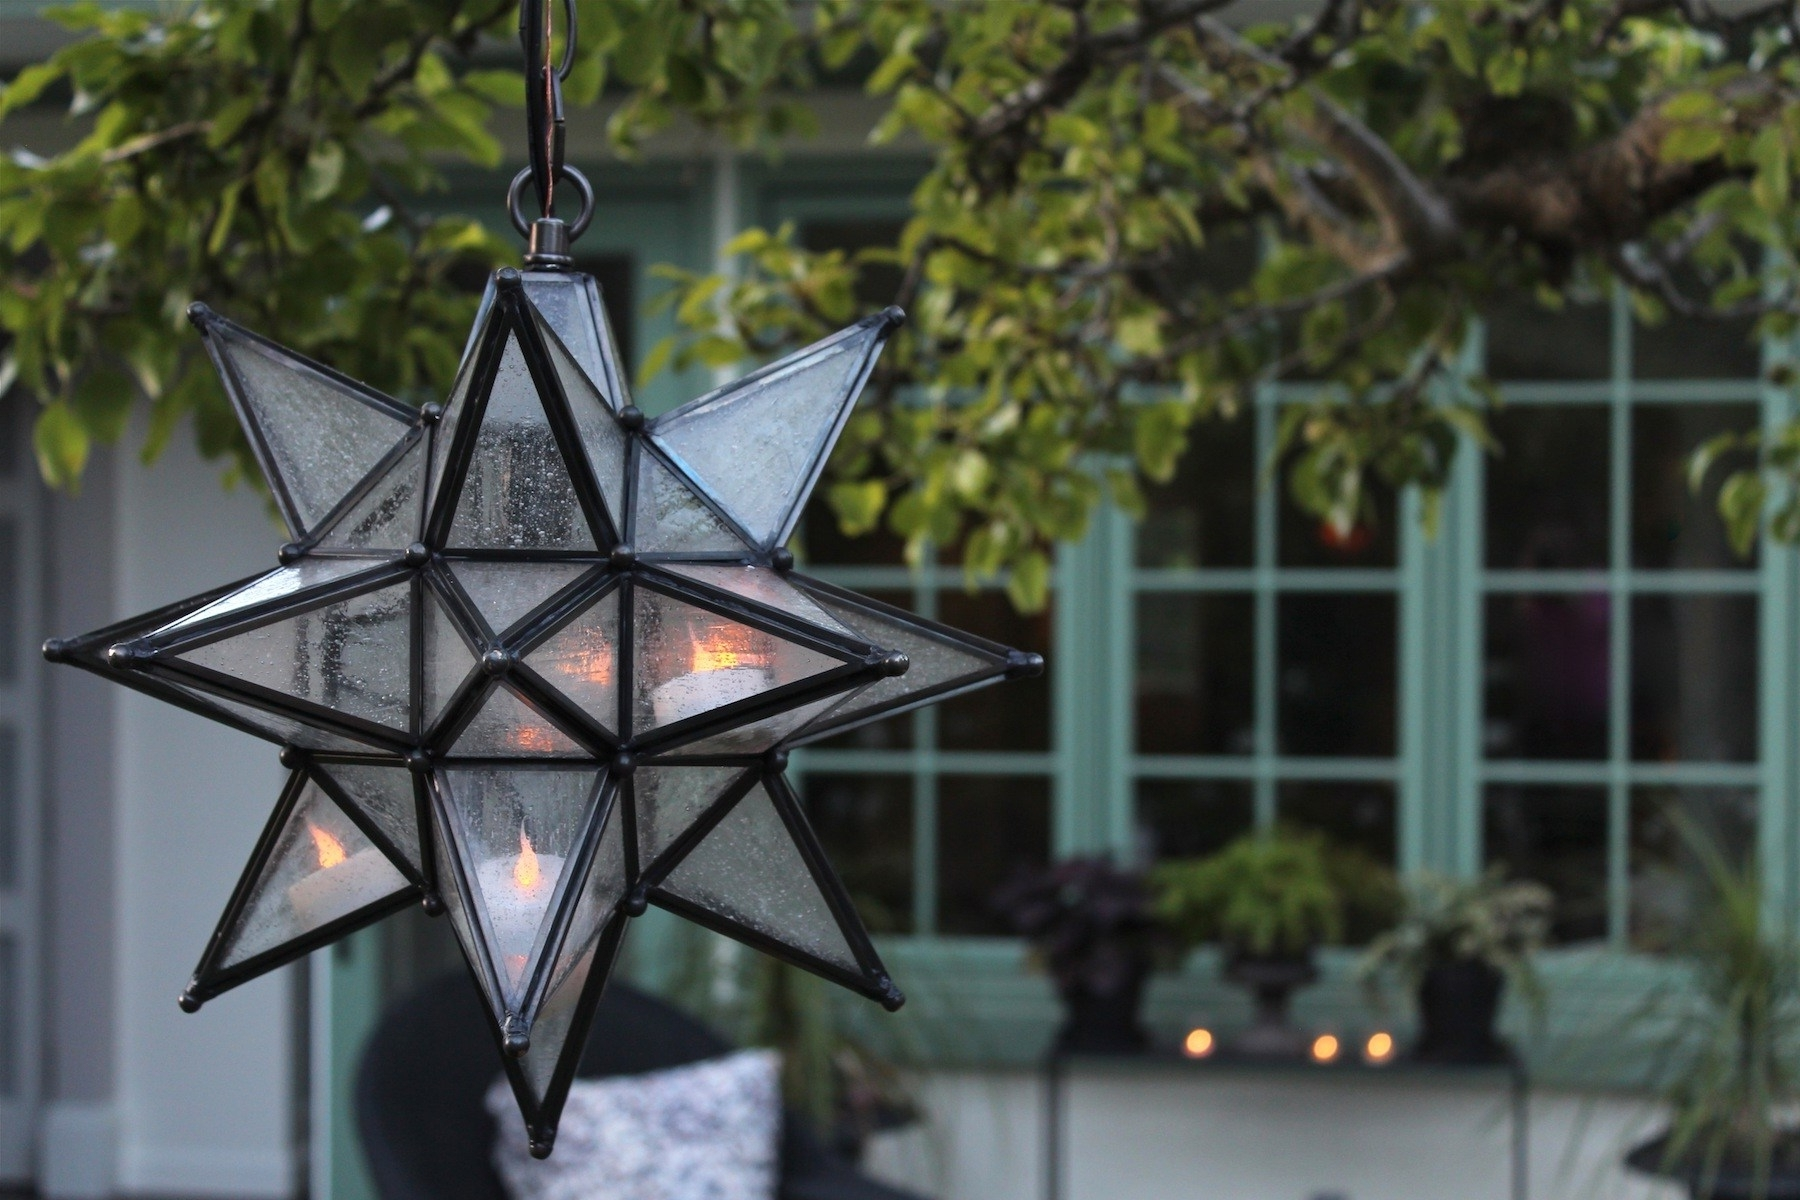 Terrific Garden In Elka Pottery Barn Pendant Olivia Star Pendant To Throughout Most Current Outdoor Lanterns At Pottery Barn (View 19 of 20)